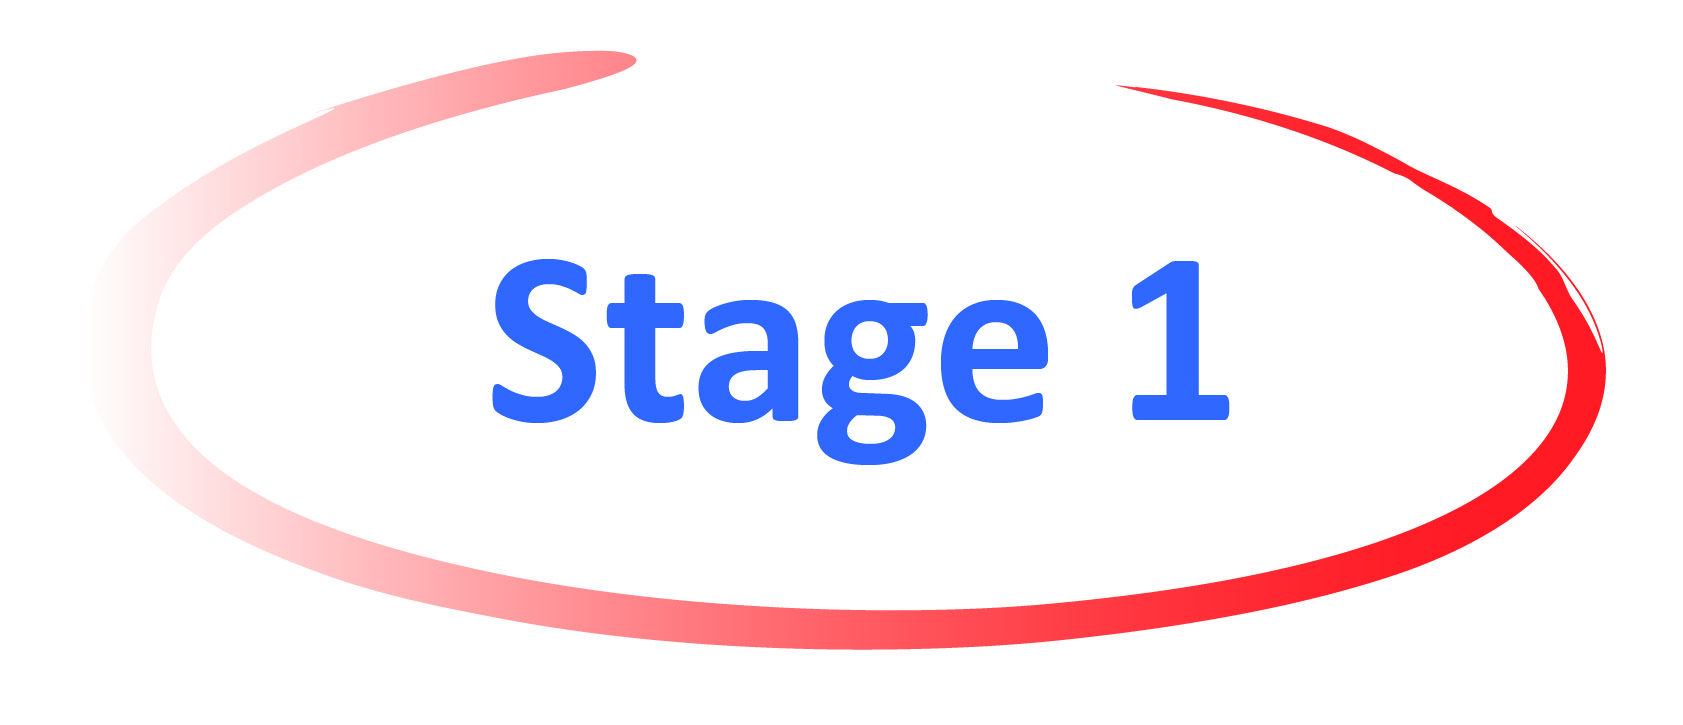 1 clipart stage. Oxford university innovation pixels